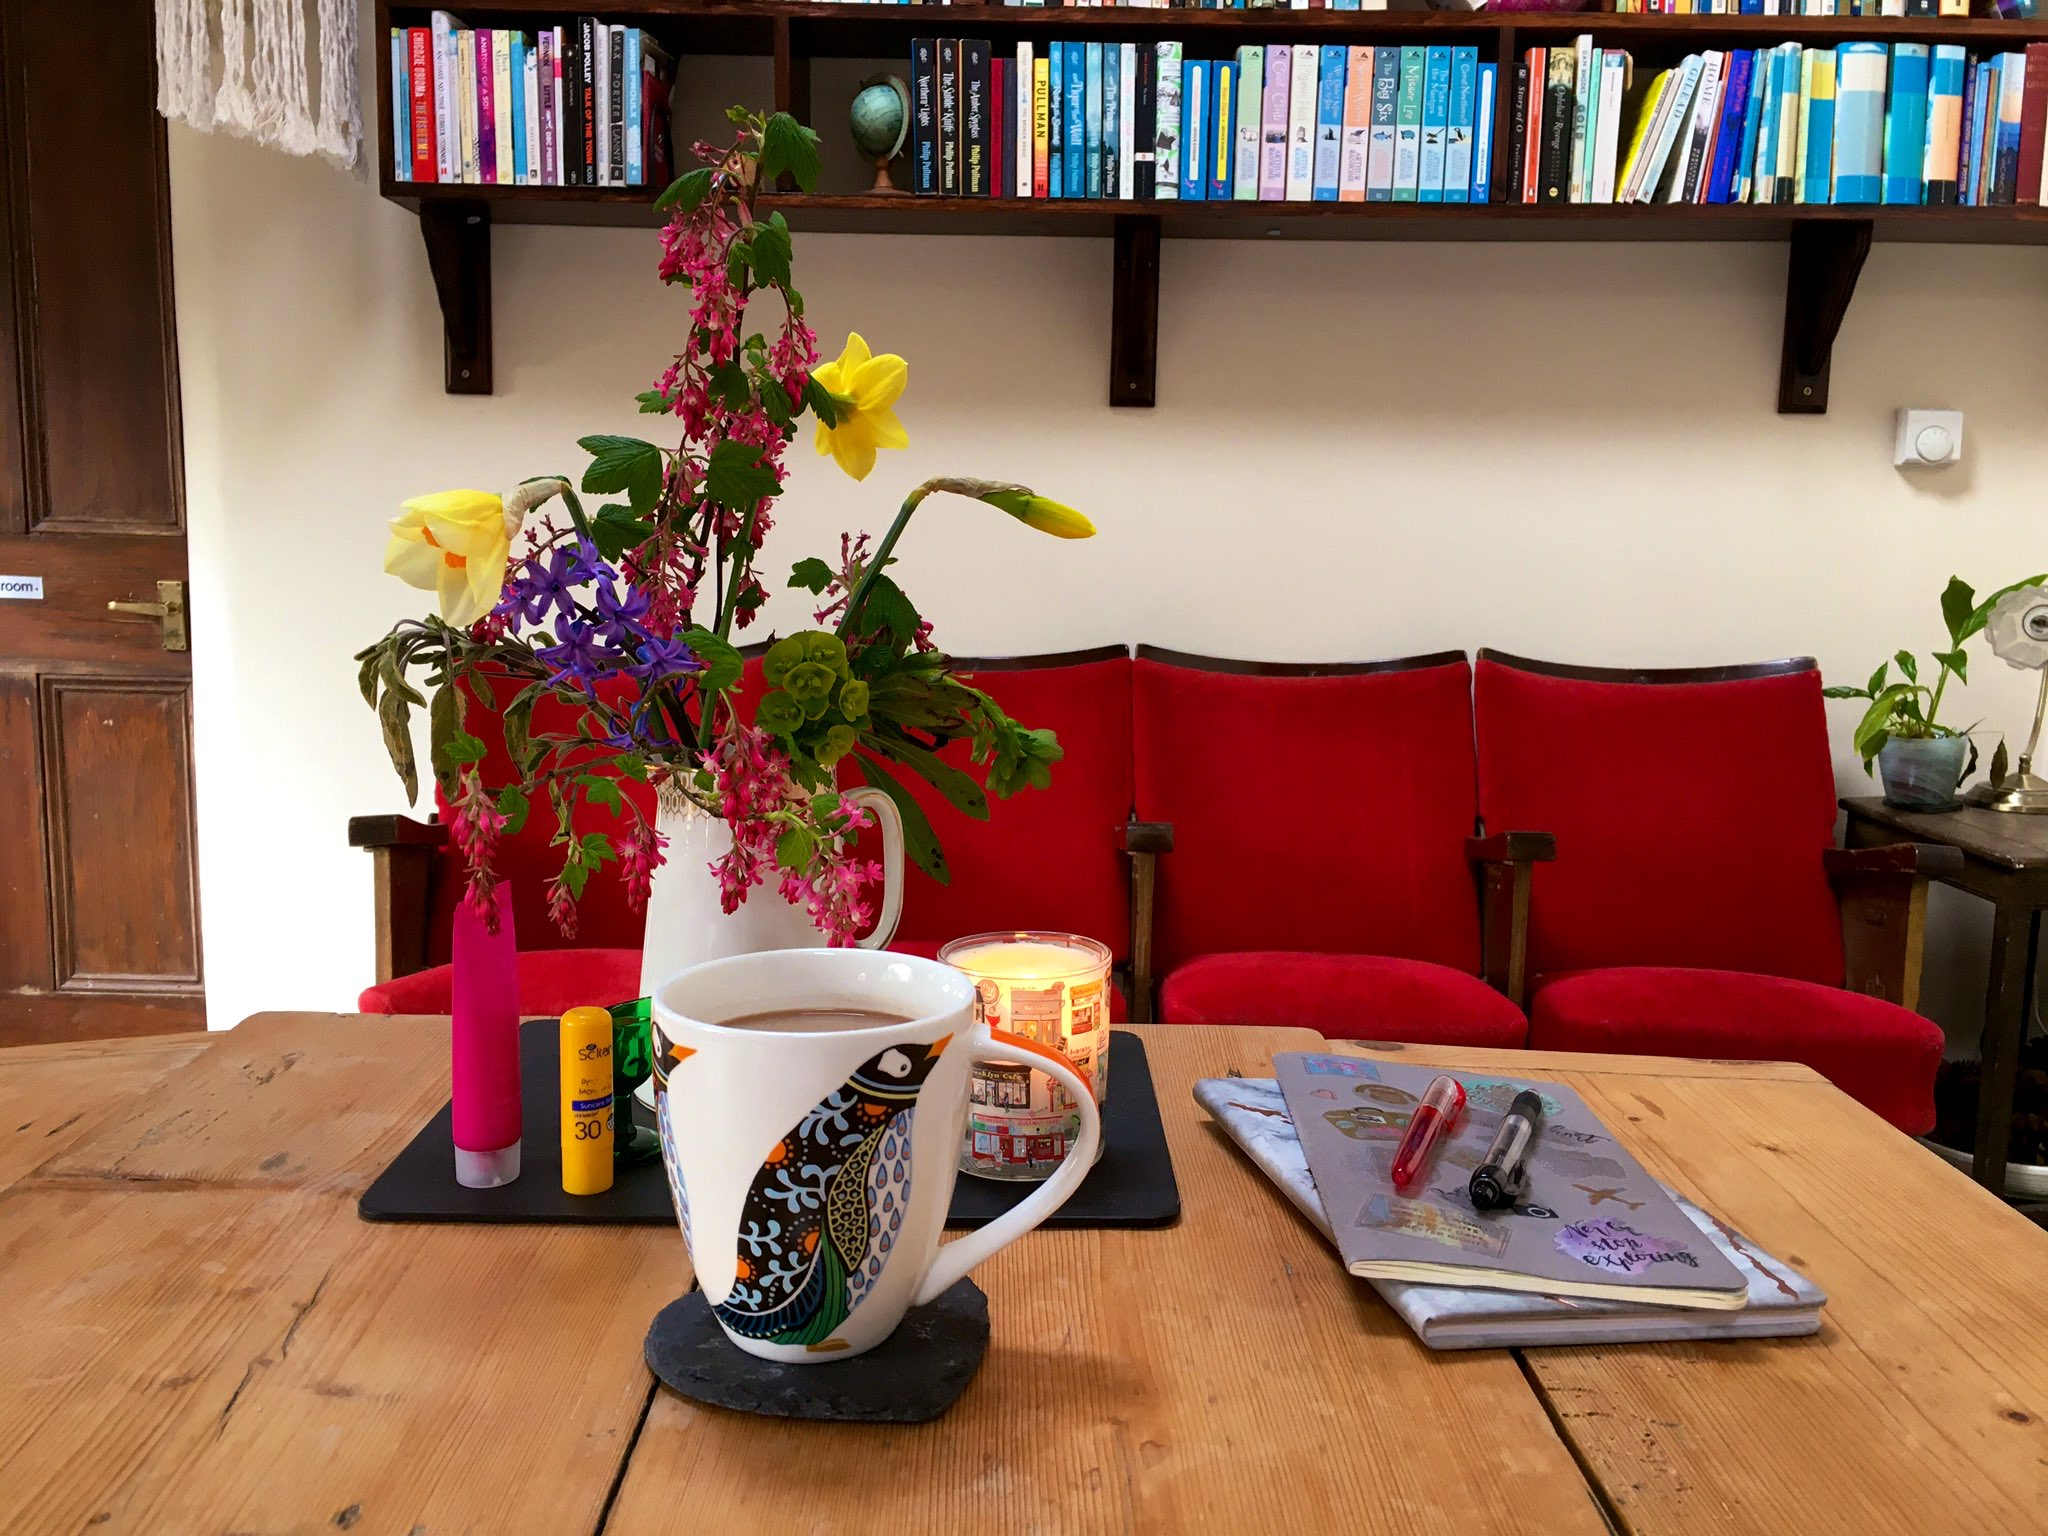 Kitchen table, with notebooks, pens, coffee and a vase of flowers. In the background, theatre seats and the bottom of a set of wall-mounted bookshelves.